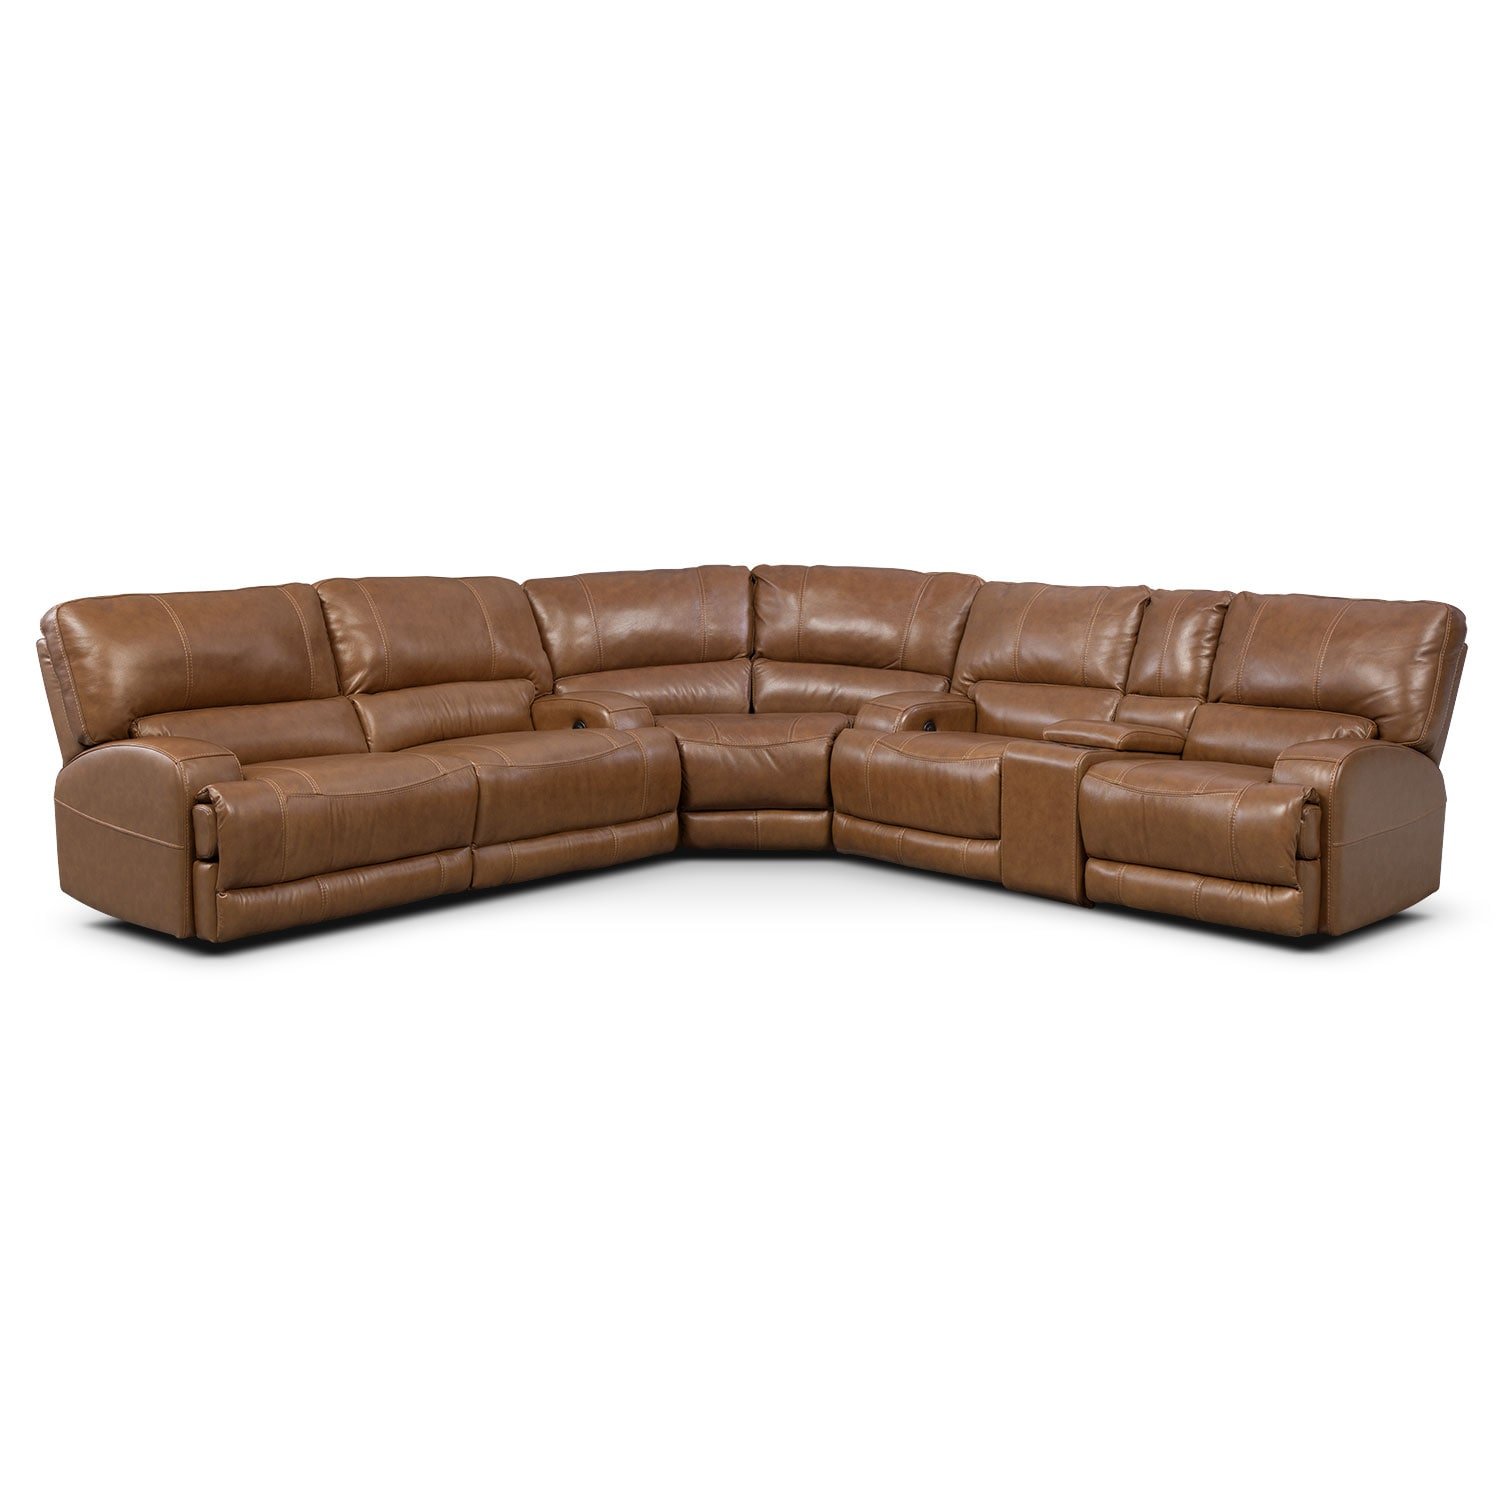 The Barton Sectional Collection Camel